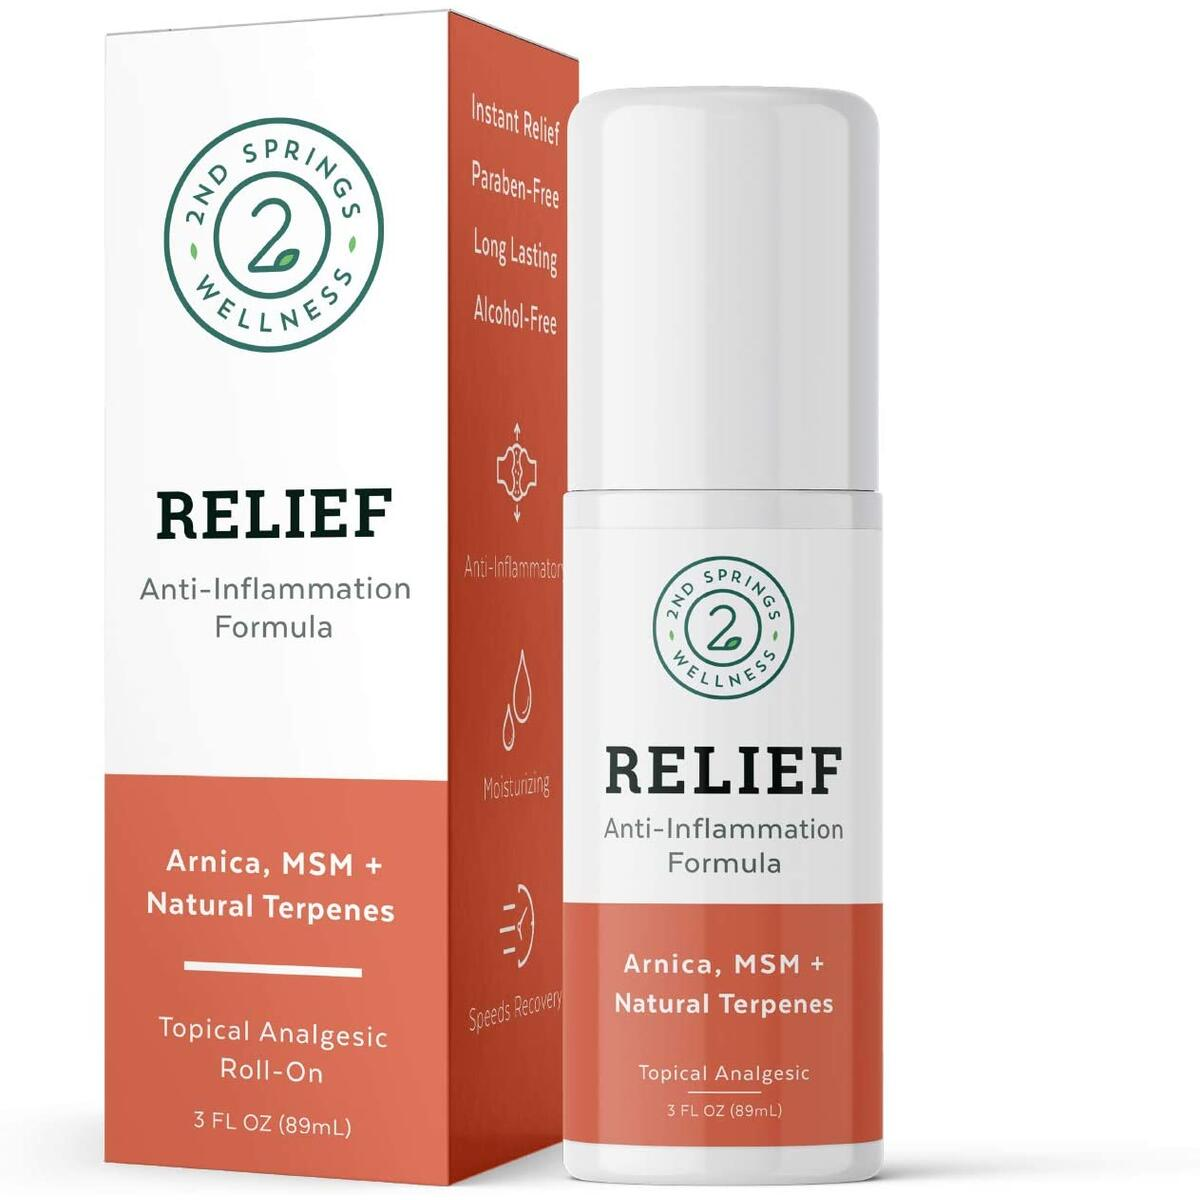 2nd Springs Relief Anti-Inflammation Formula Roll On Topical Pain Reliever Analgesic with Arnica Montana, MSM, Proprietary Terpene Blend, Vitamin E, Selenium, and Glucosamine - 3oz Roller